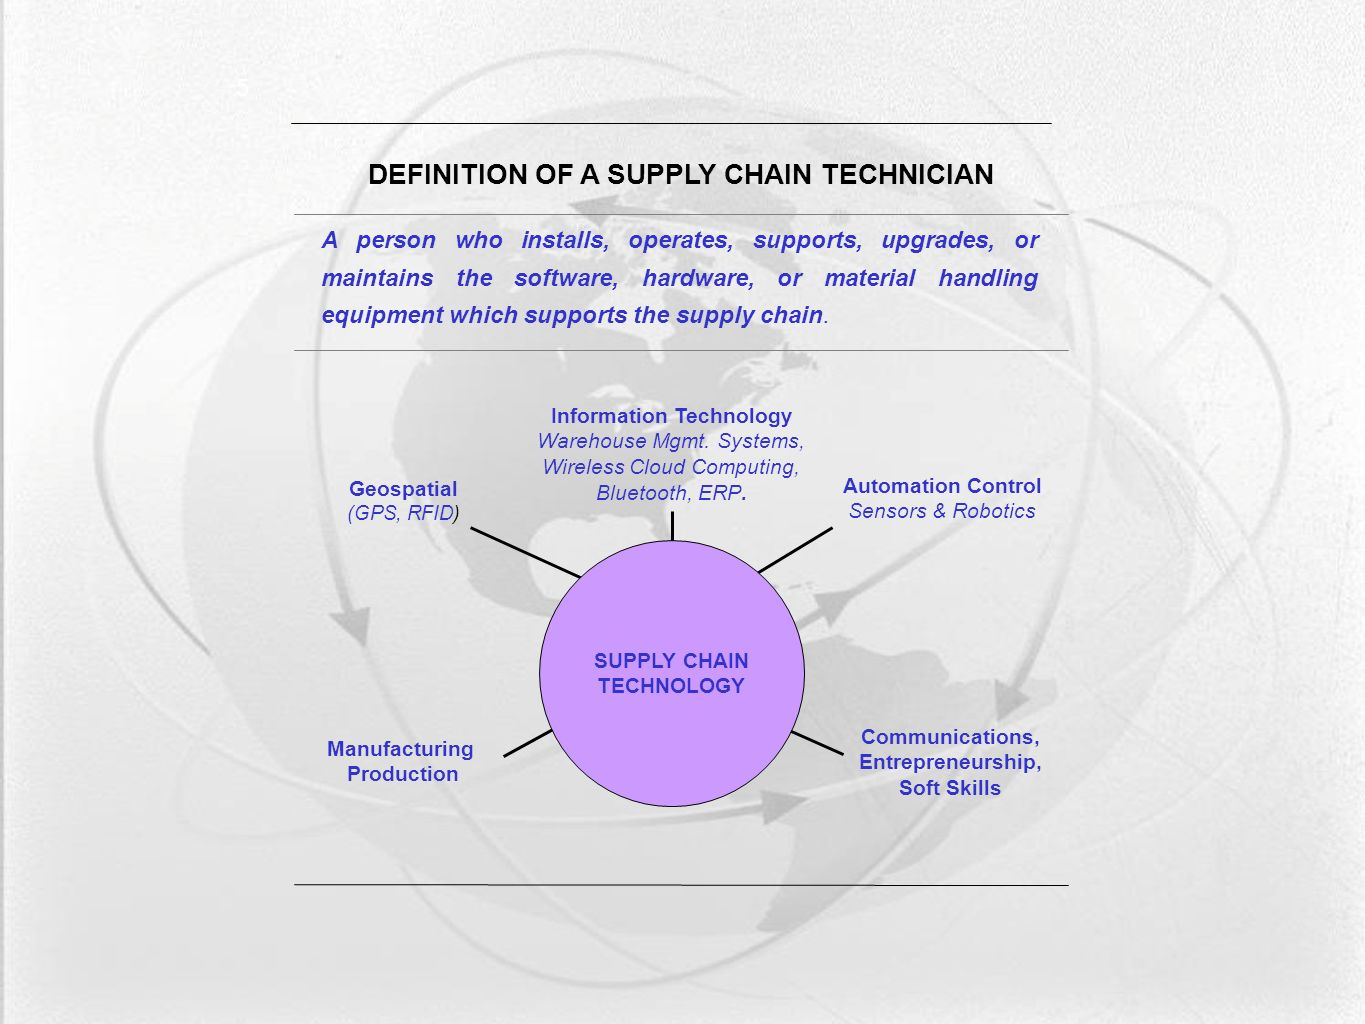 5 DEFINITION OF A SUPPLY CHAIN TECHNICIAN SUPPLY CHAIN TECHNOLOGY Information Technology Warehouse Mgmt.